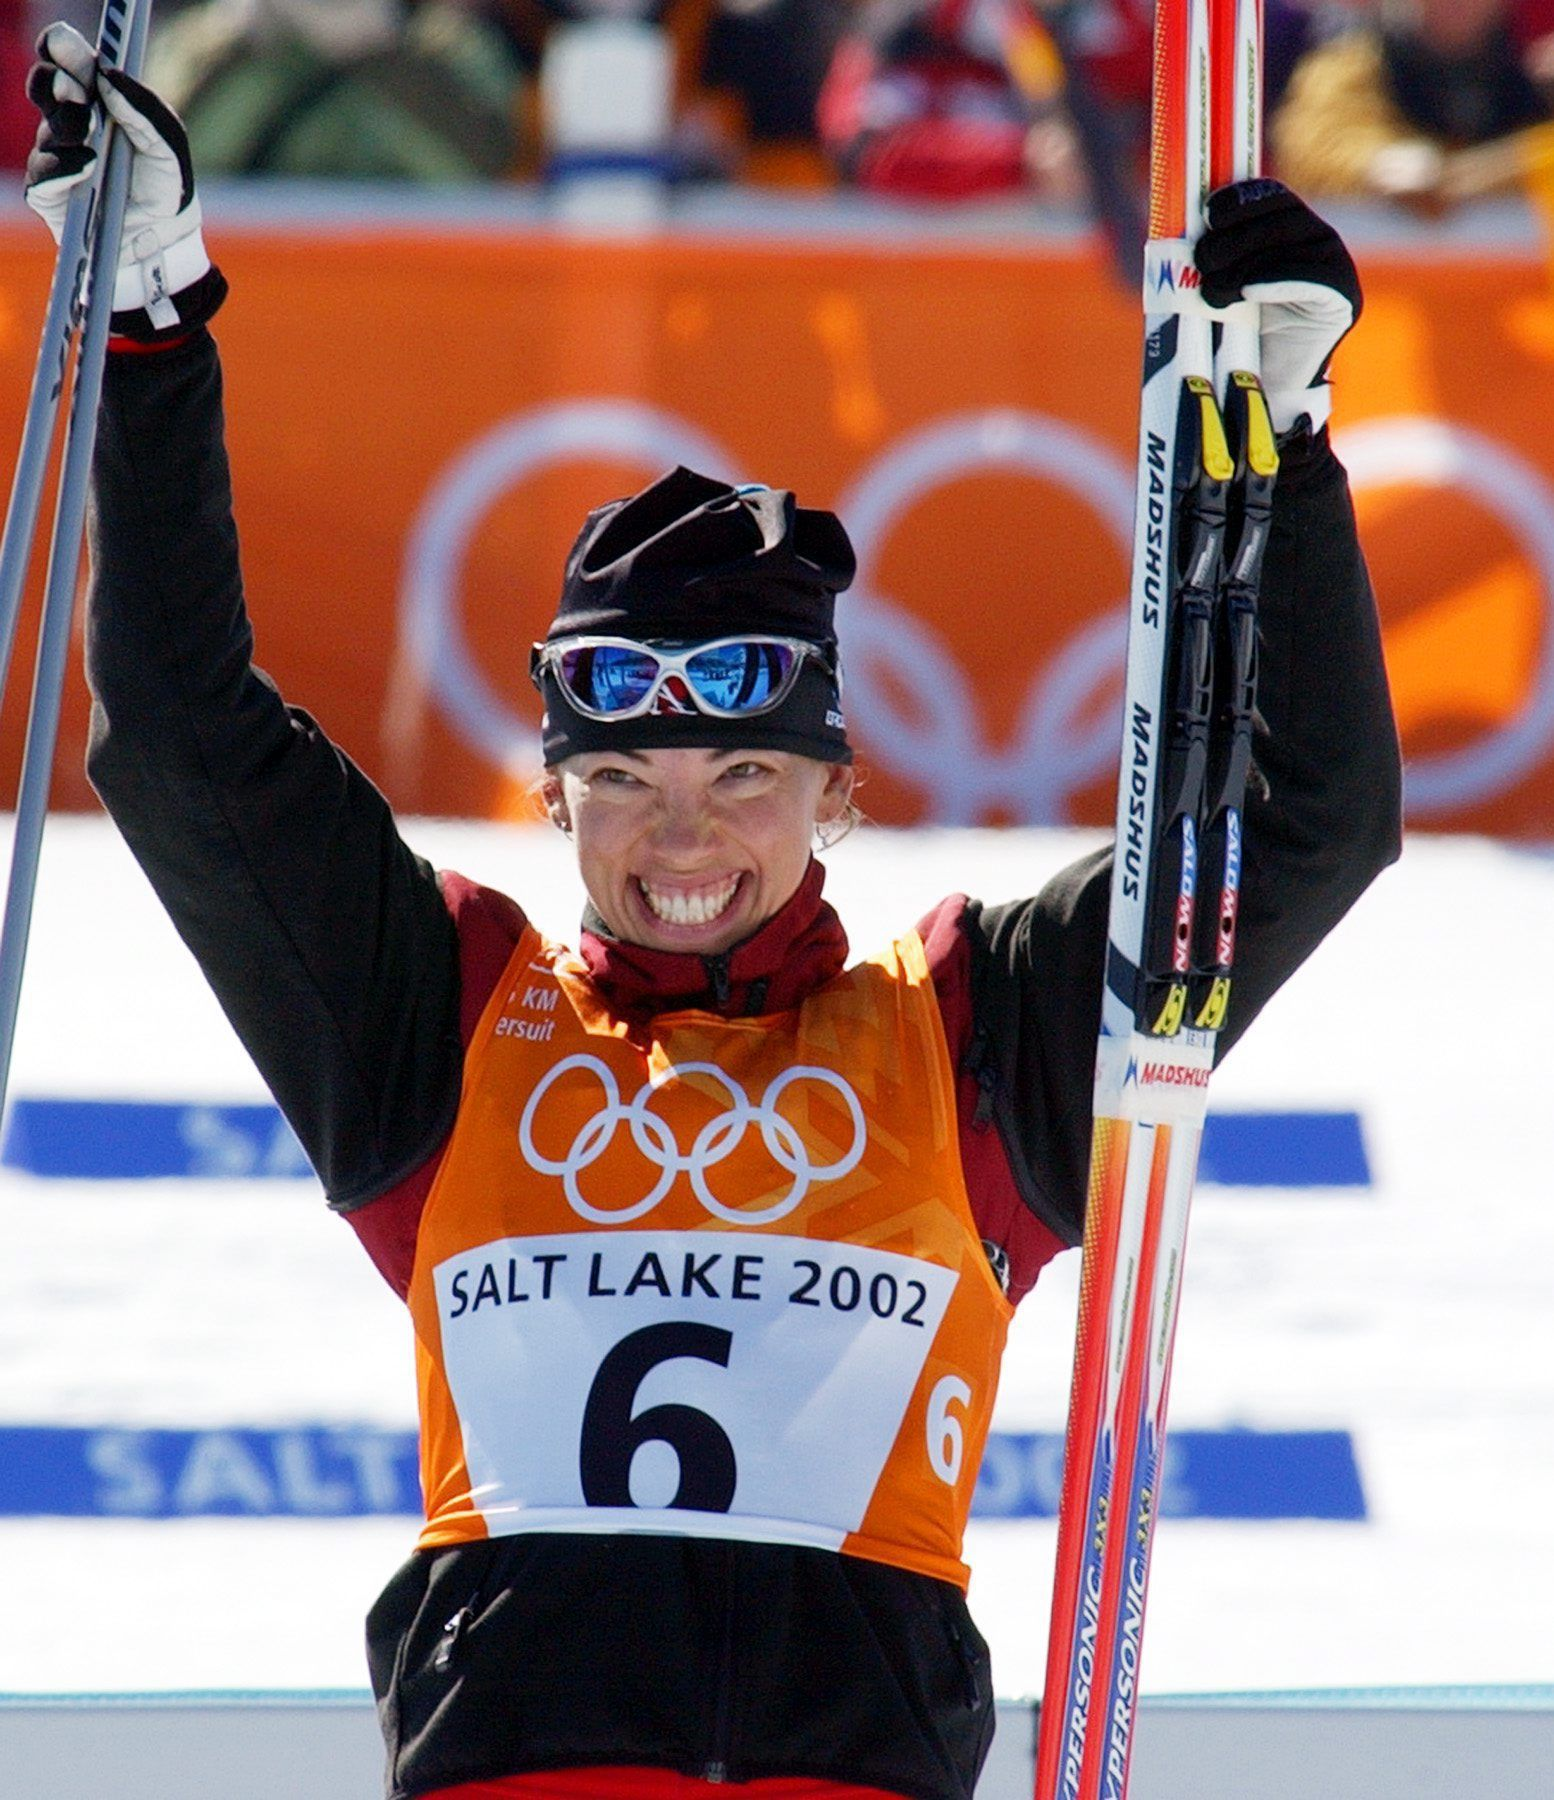 Beckie Scott was Canada's first cross-country skiing medalist, a bronze. Then her Olympic story took a strange turn as the two skiers in front of her tested positive for steroids. She would eventually be awarded the silver and gold medals.